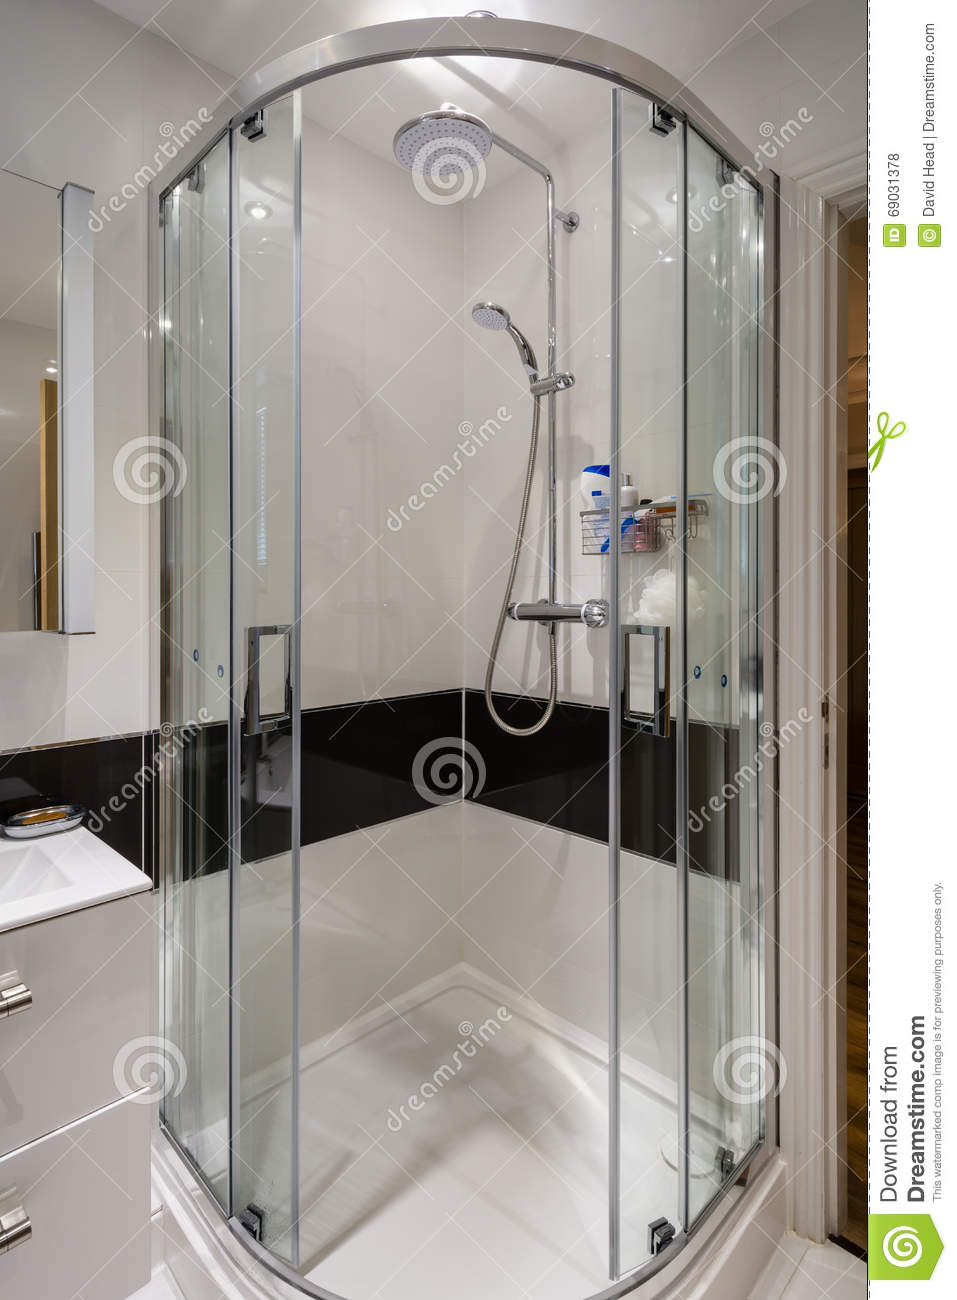 Corner Shower Cubicle stock photo. Image of indoors, cabin - 69031378